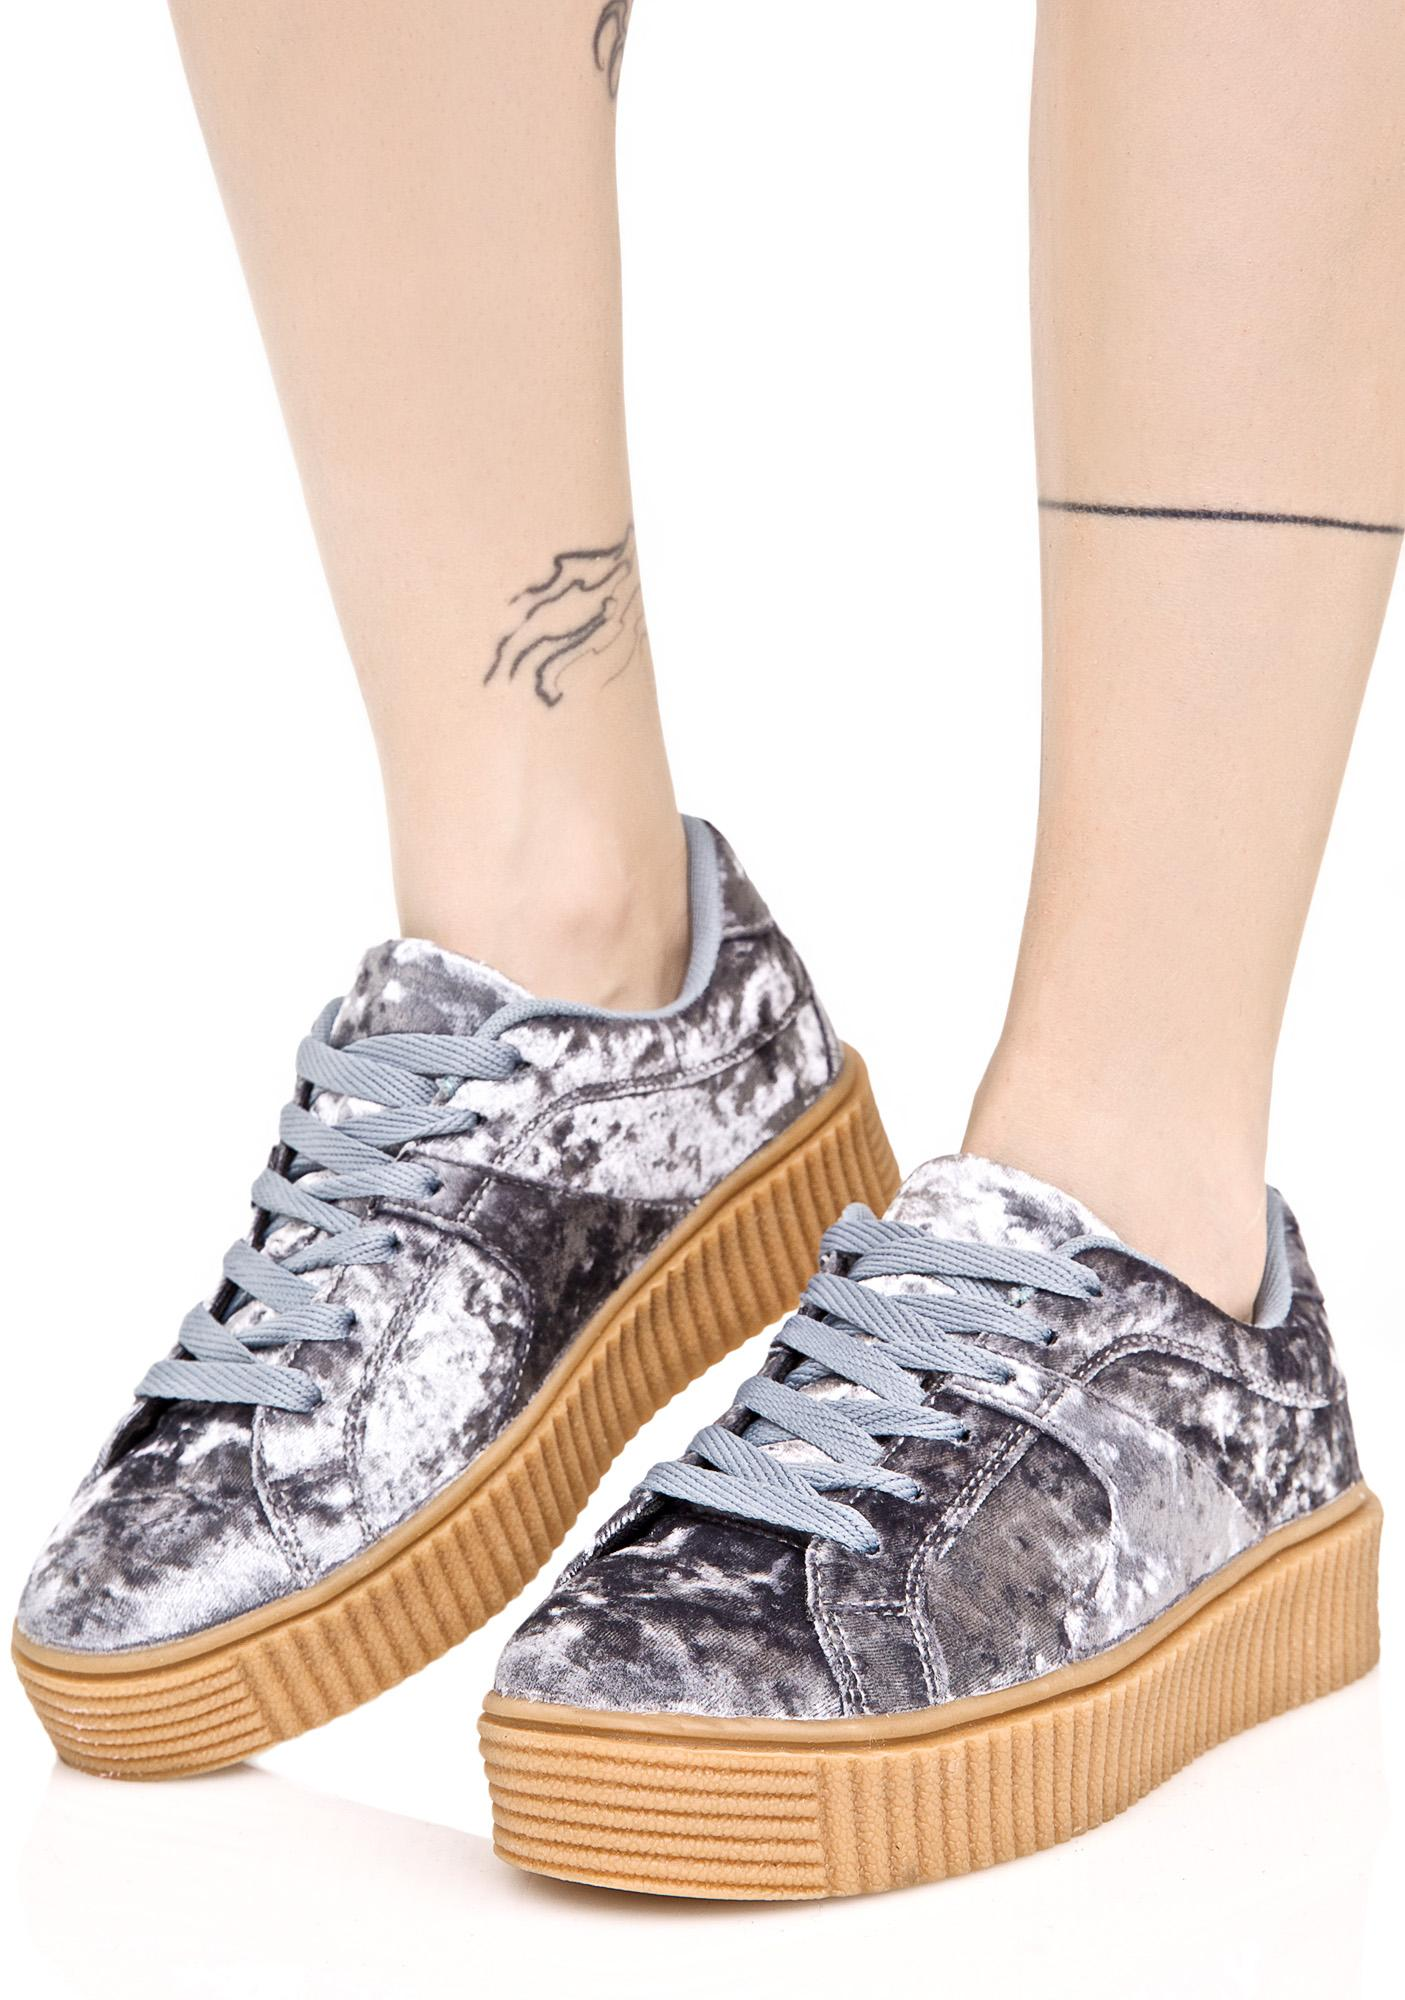 lowest price 4aee2 34824 Doubt It Creeper Sneakers